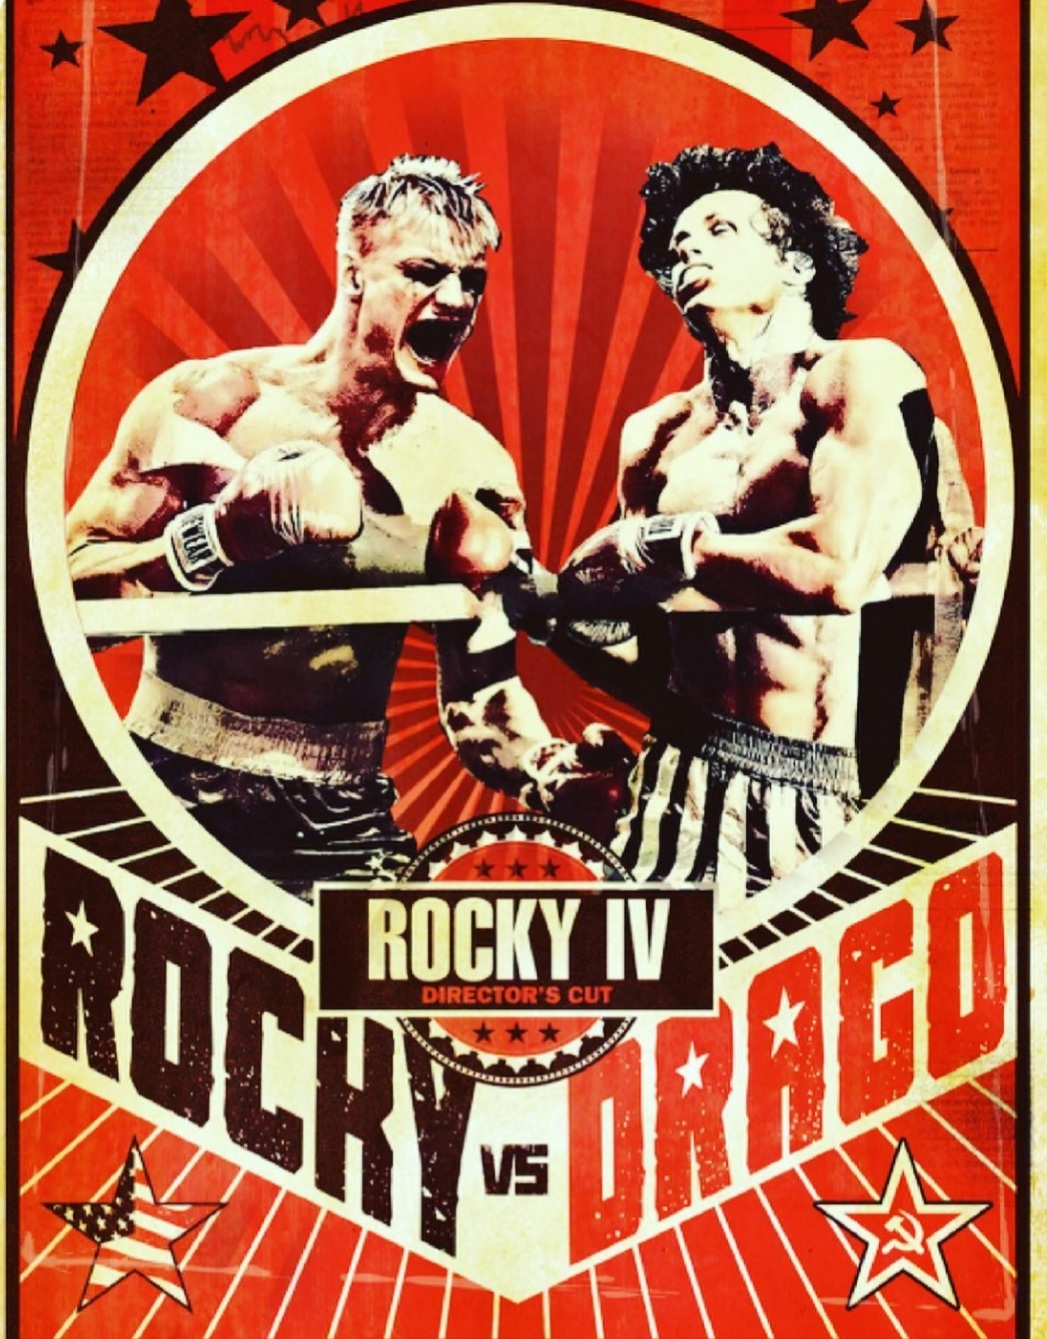 Rocky IV Director's Cut poster (in theaters November 11th)